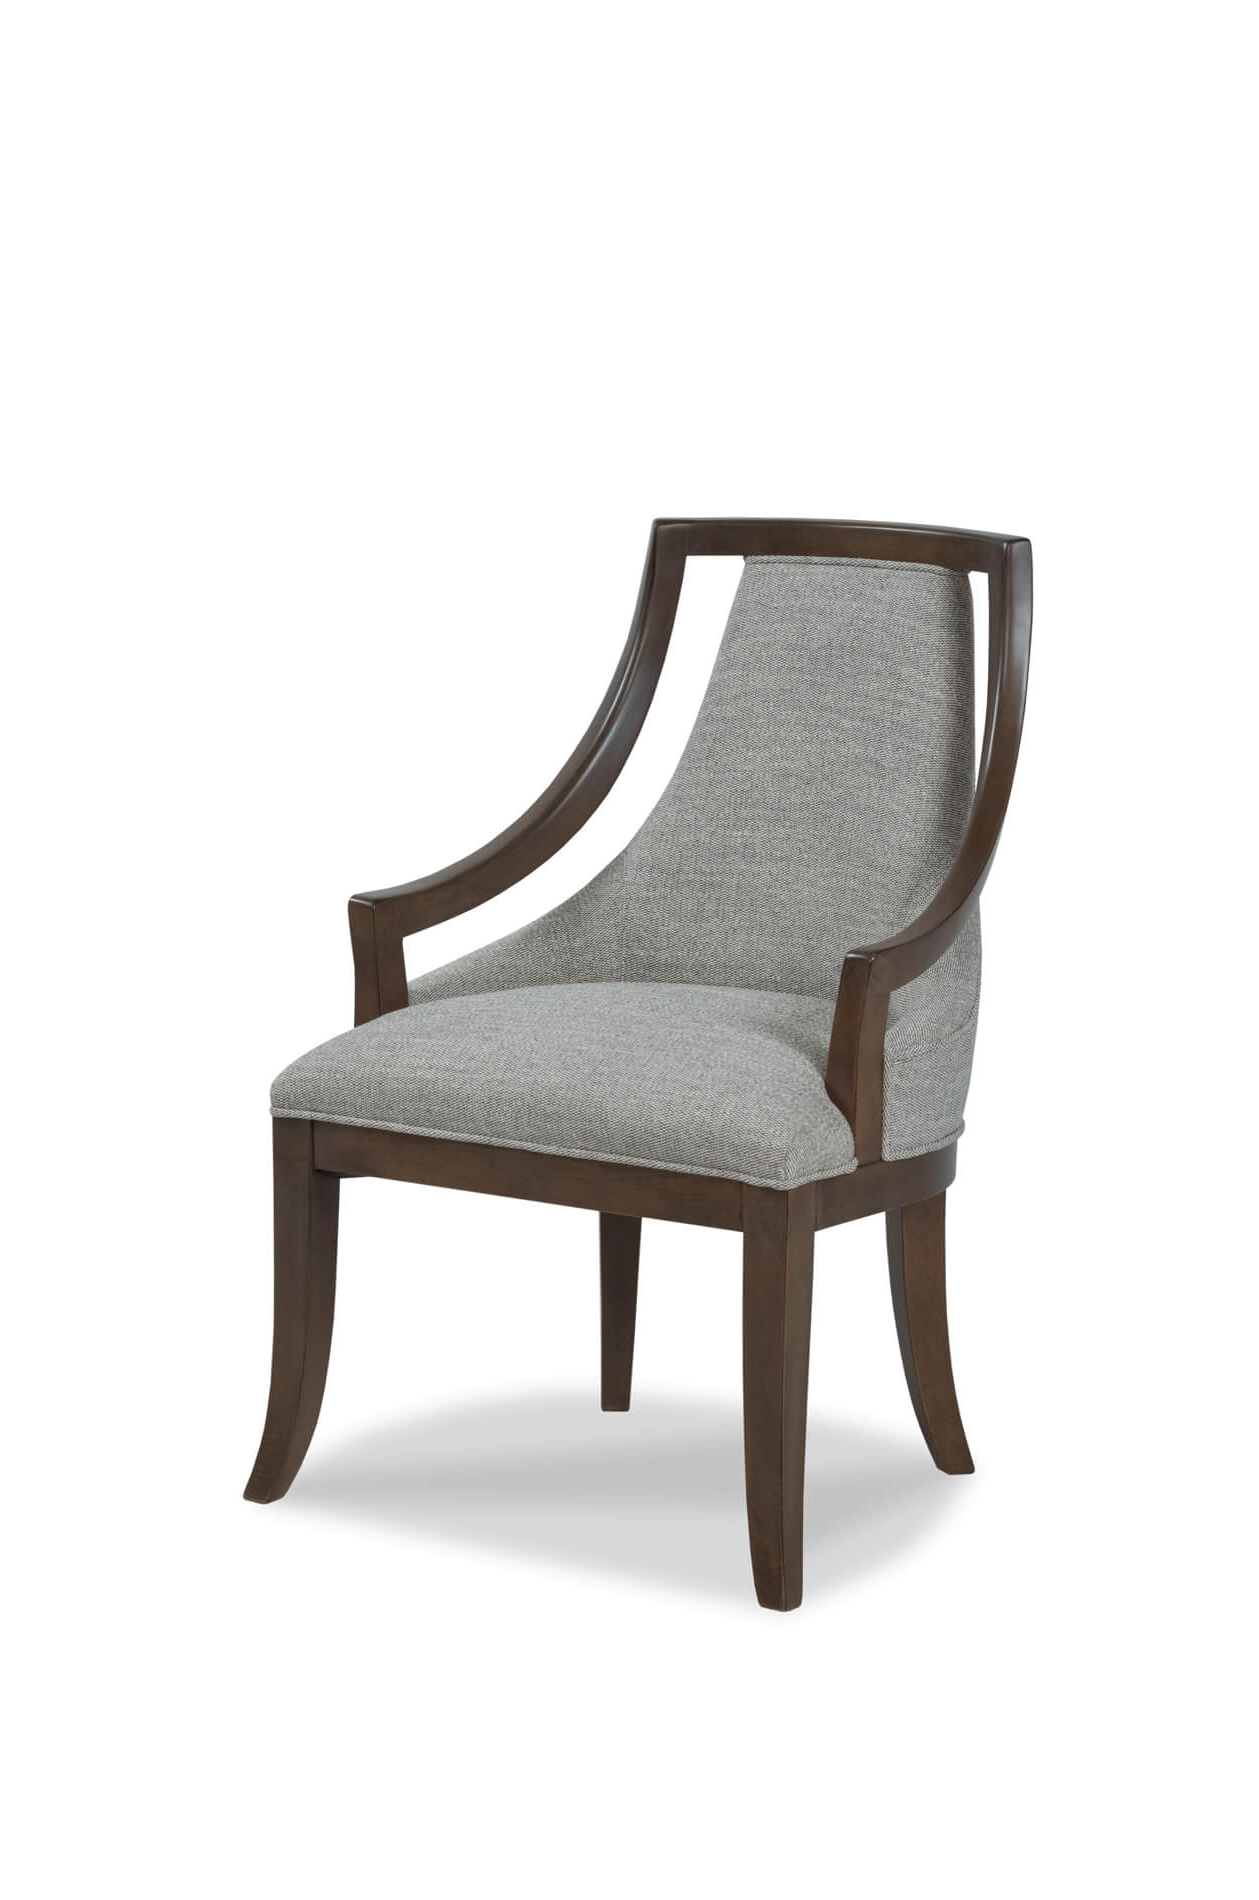 Caldwell Armchairs Pertaining To Well Known Caldwell Upholstered Dining Arm Chair (View 2 of 20)